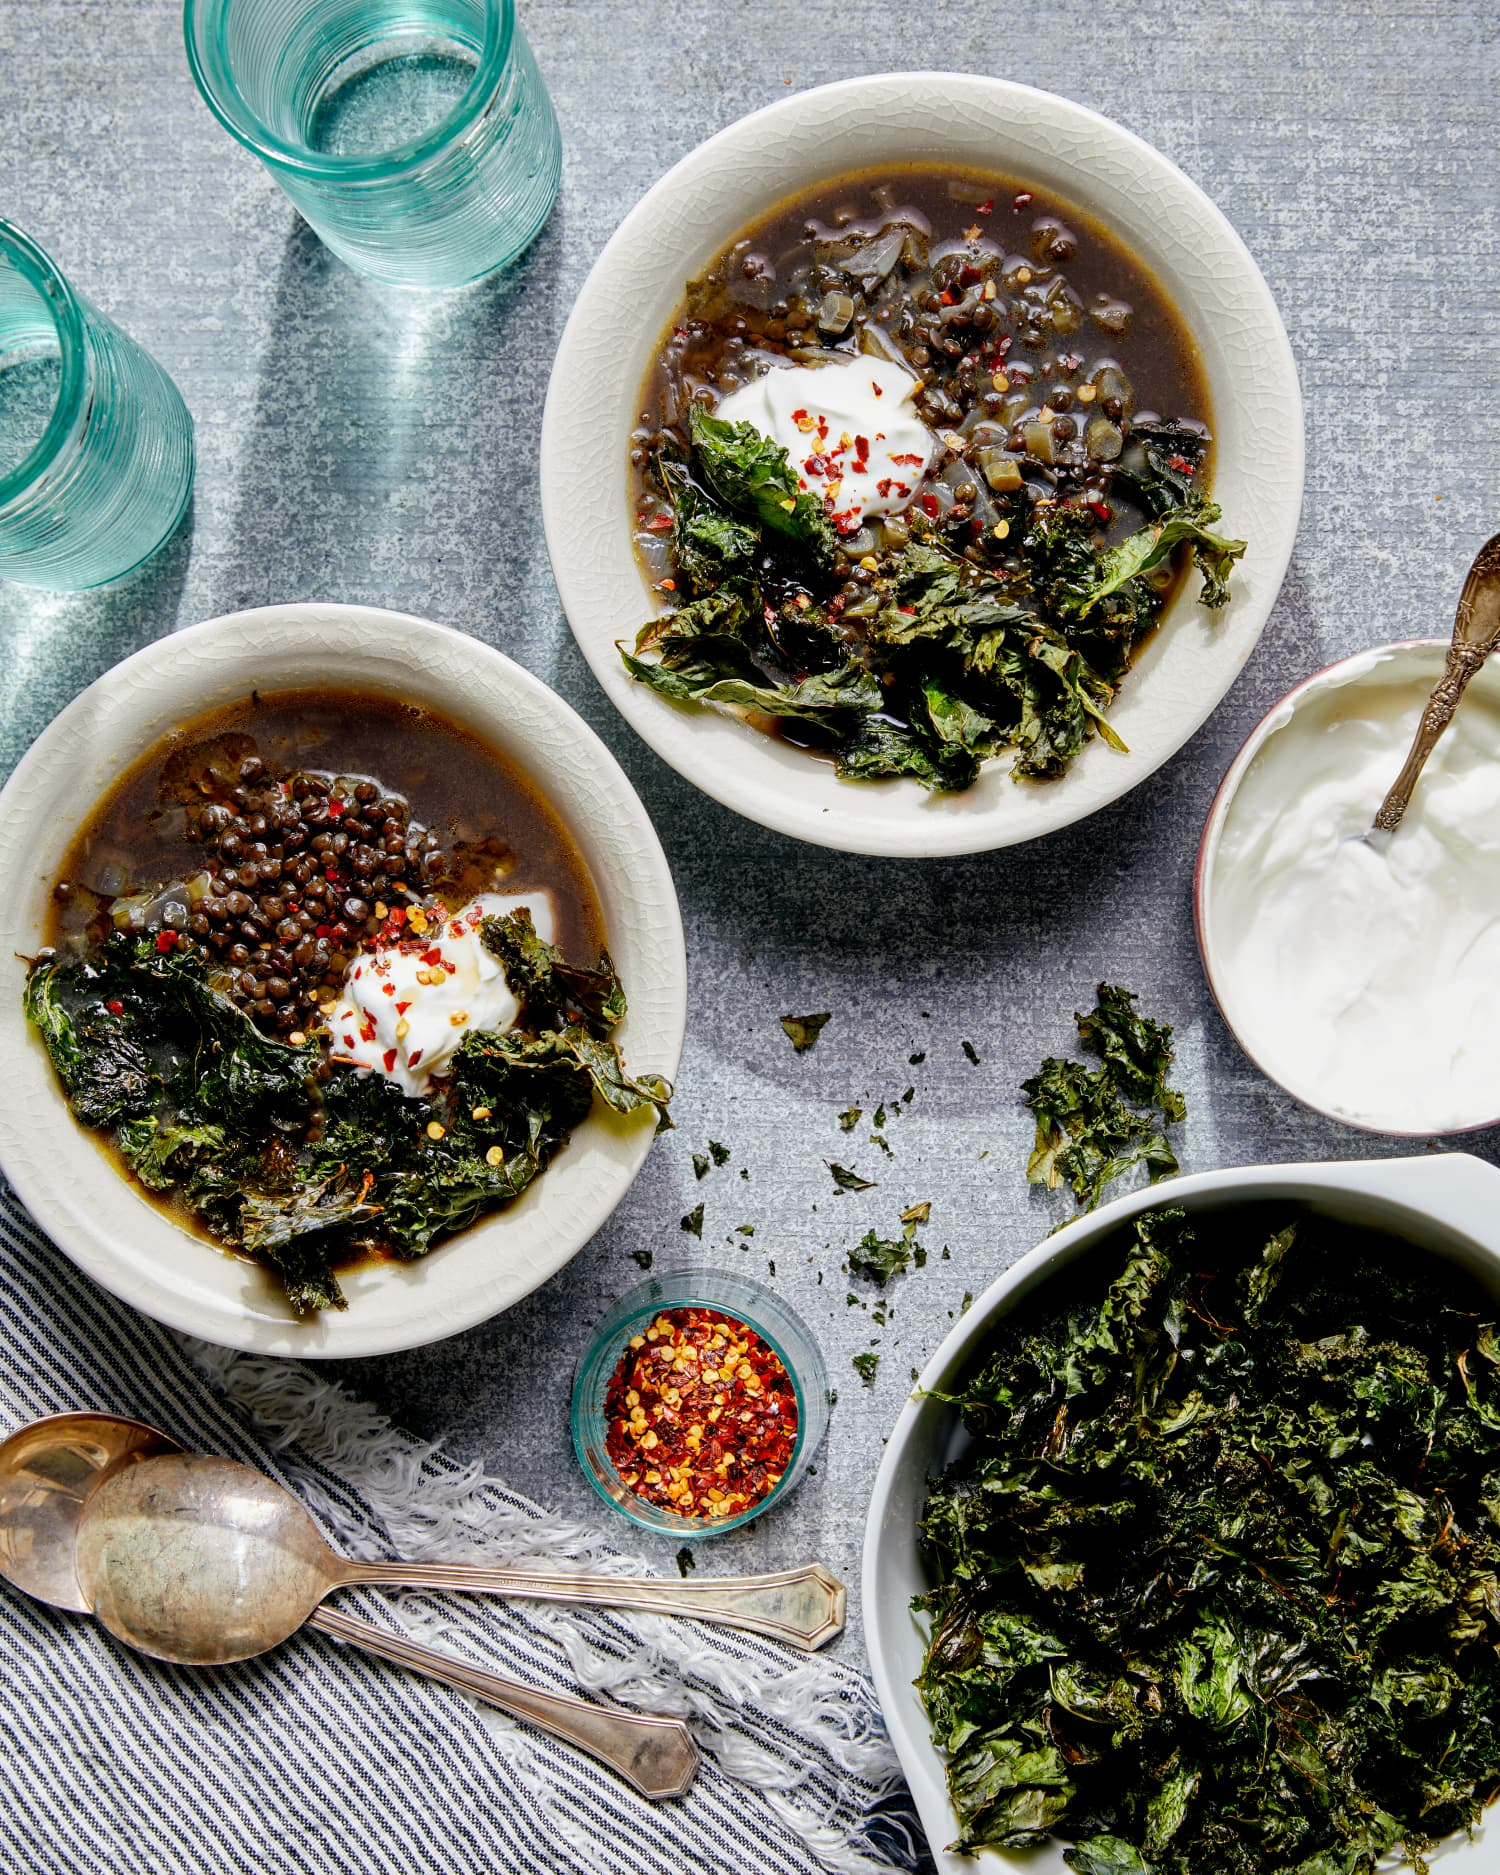 It Took Years to Find It, but This Is My Absolute Favorite Lentil Soup